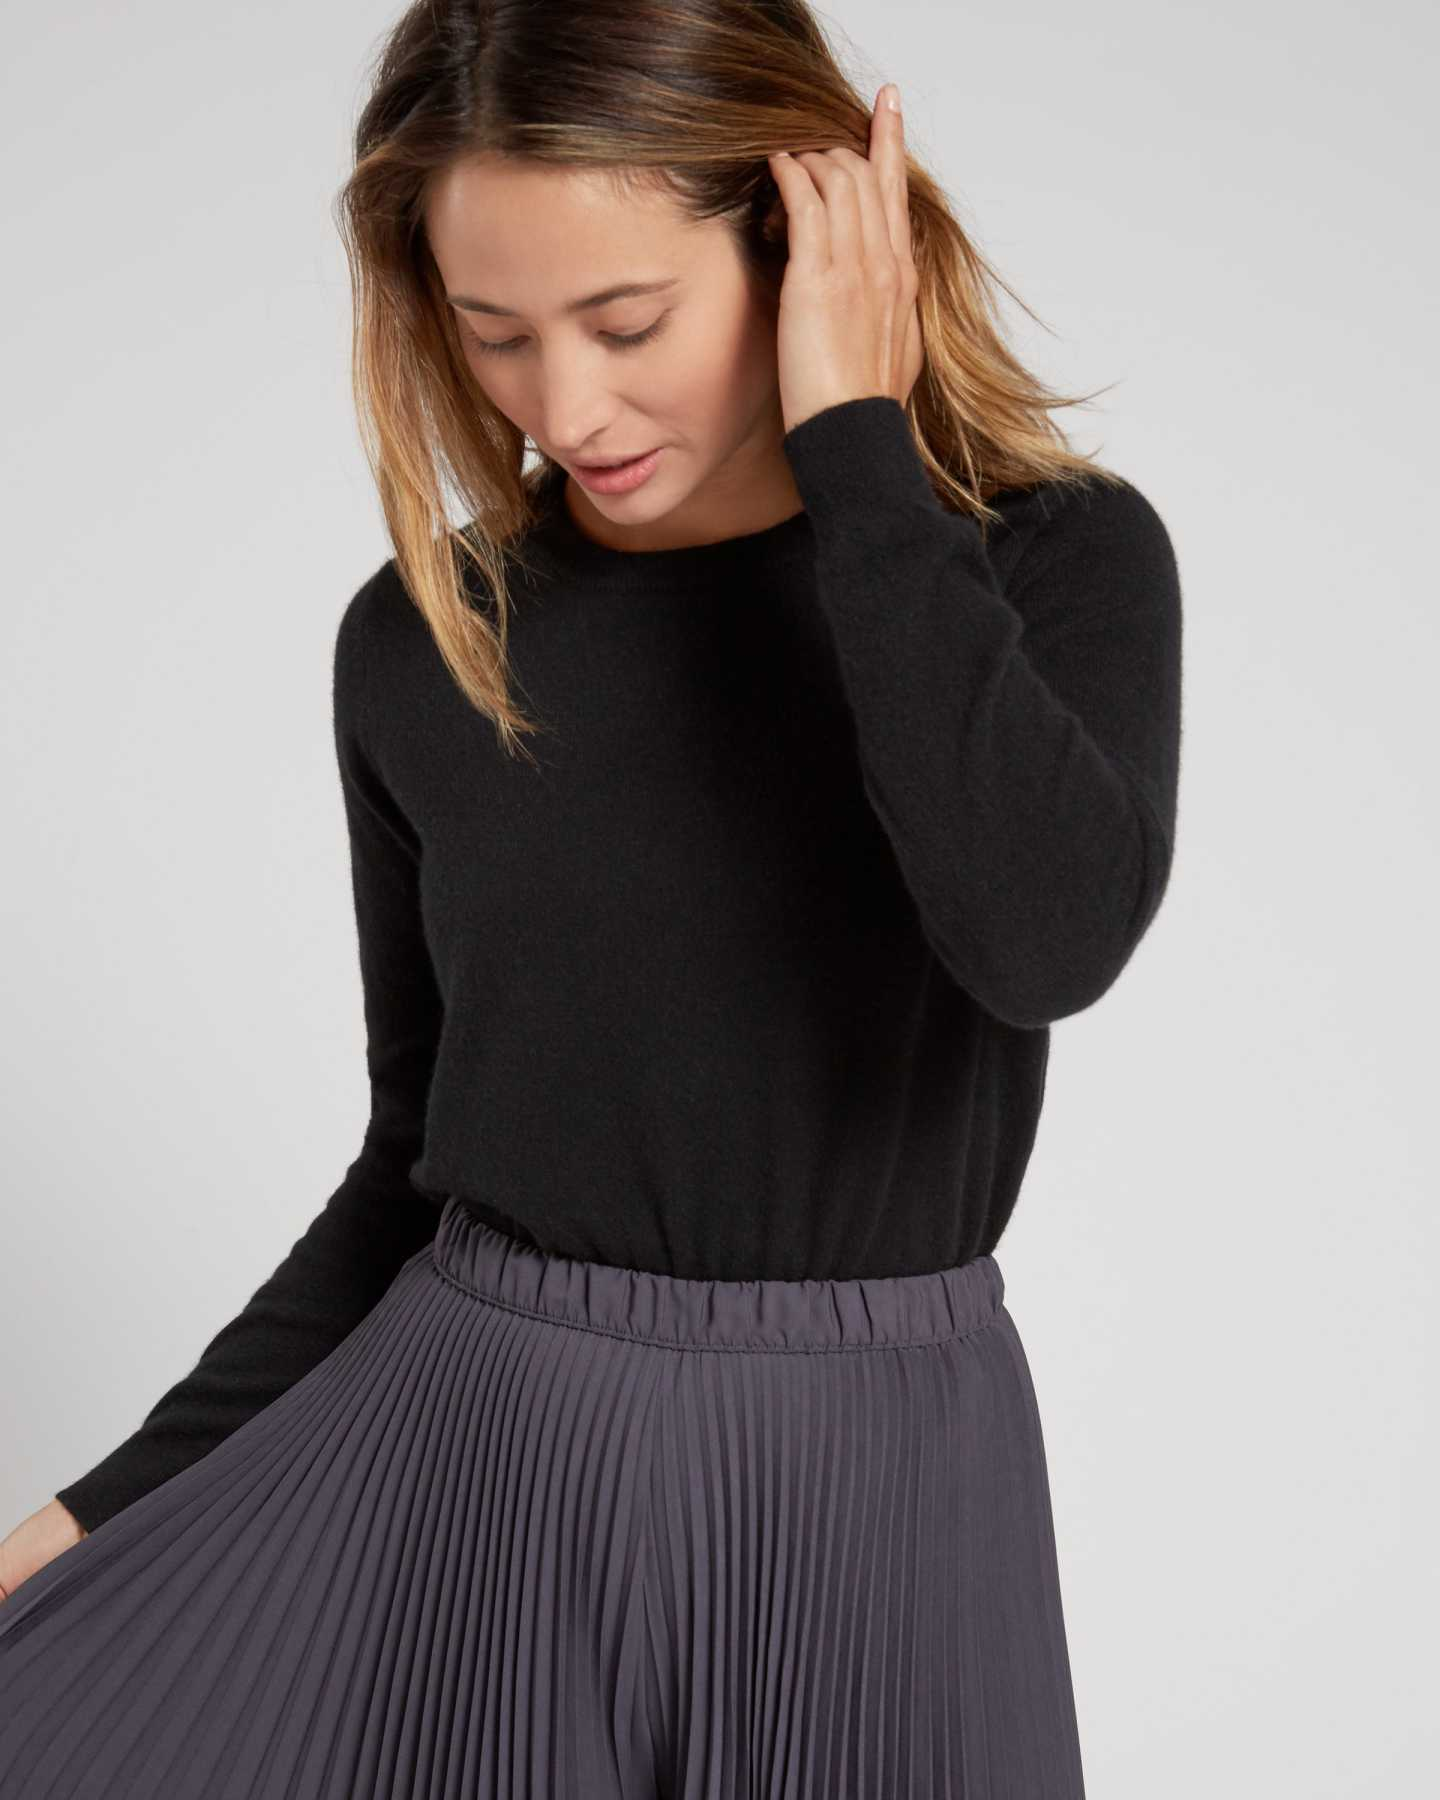 black cashmere sweater women looking down